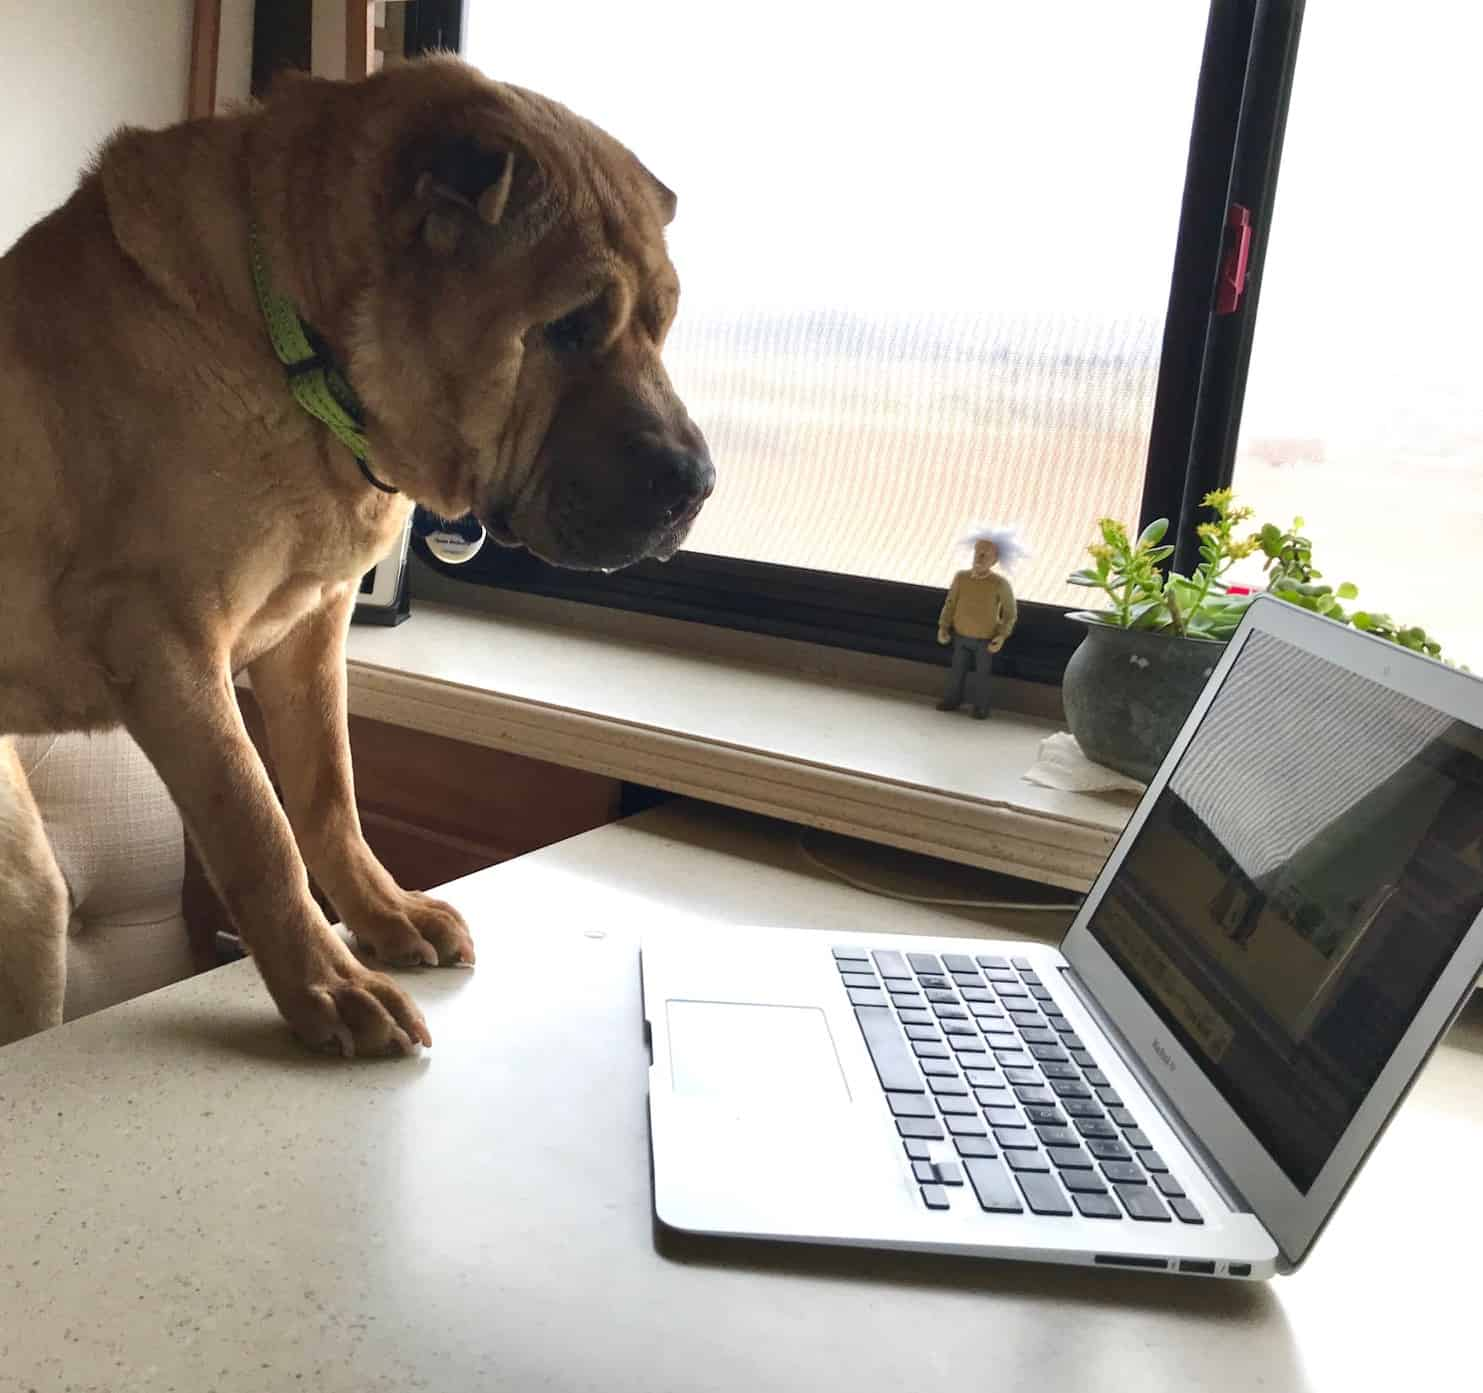 Sharpei dog watching laptop sitting at desk - supposedly reading reviews for holiday pets